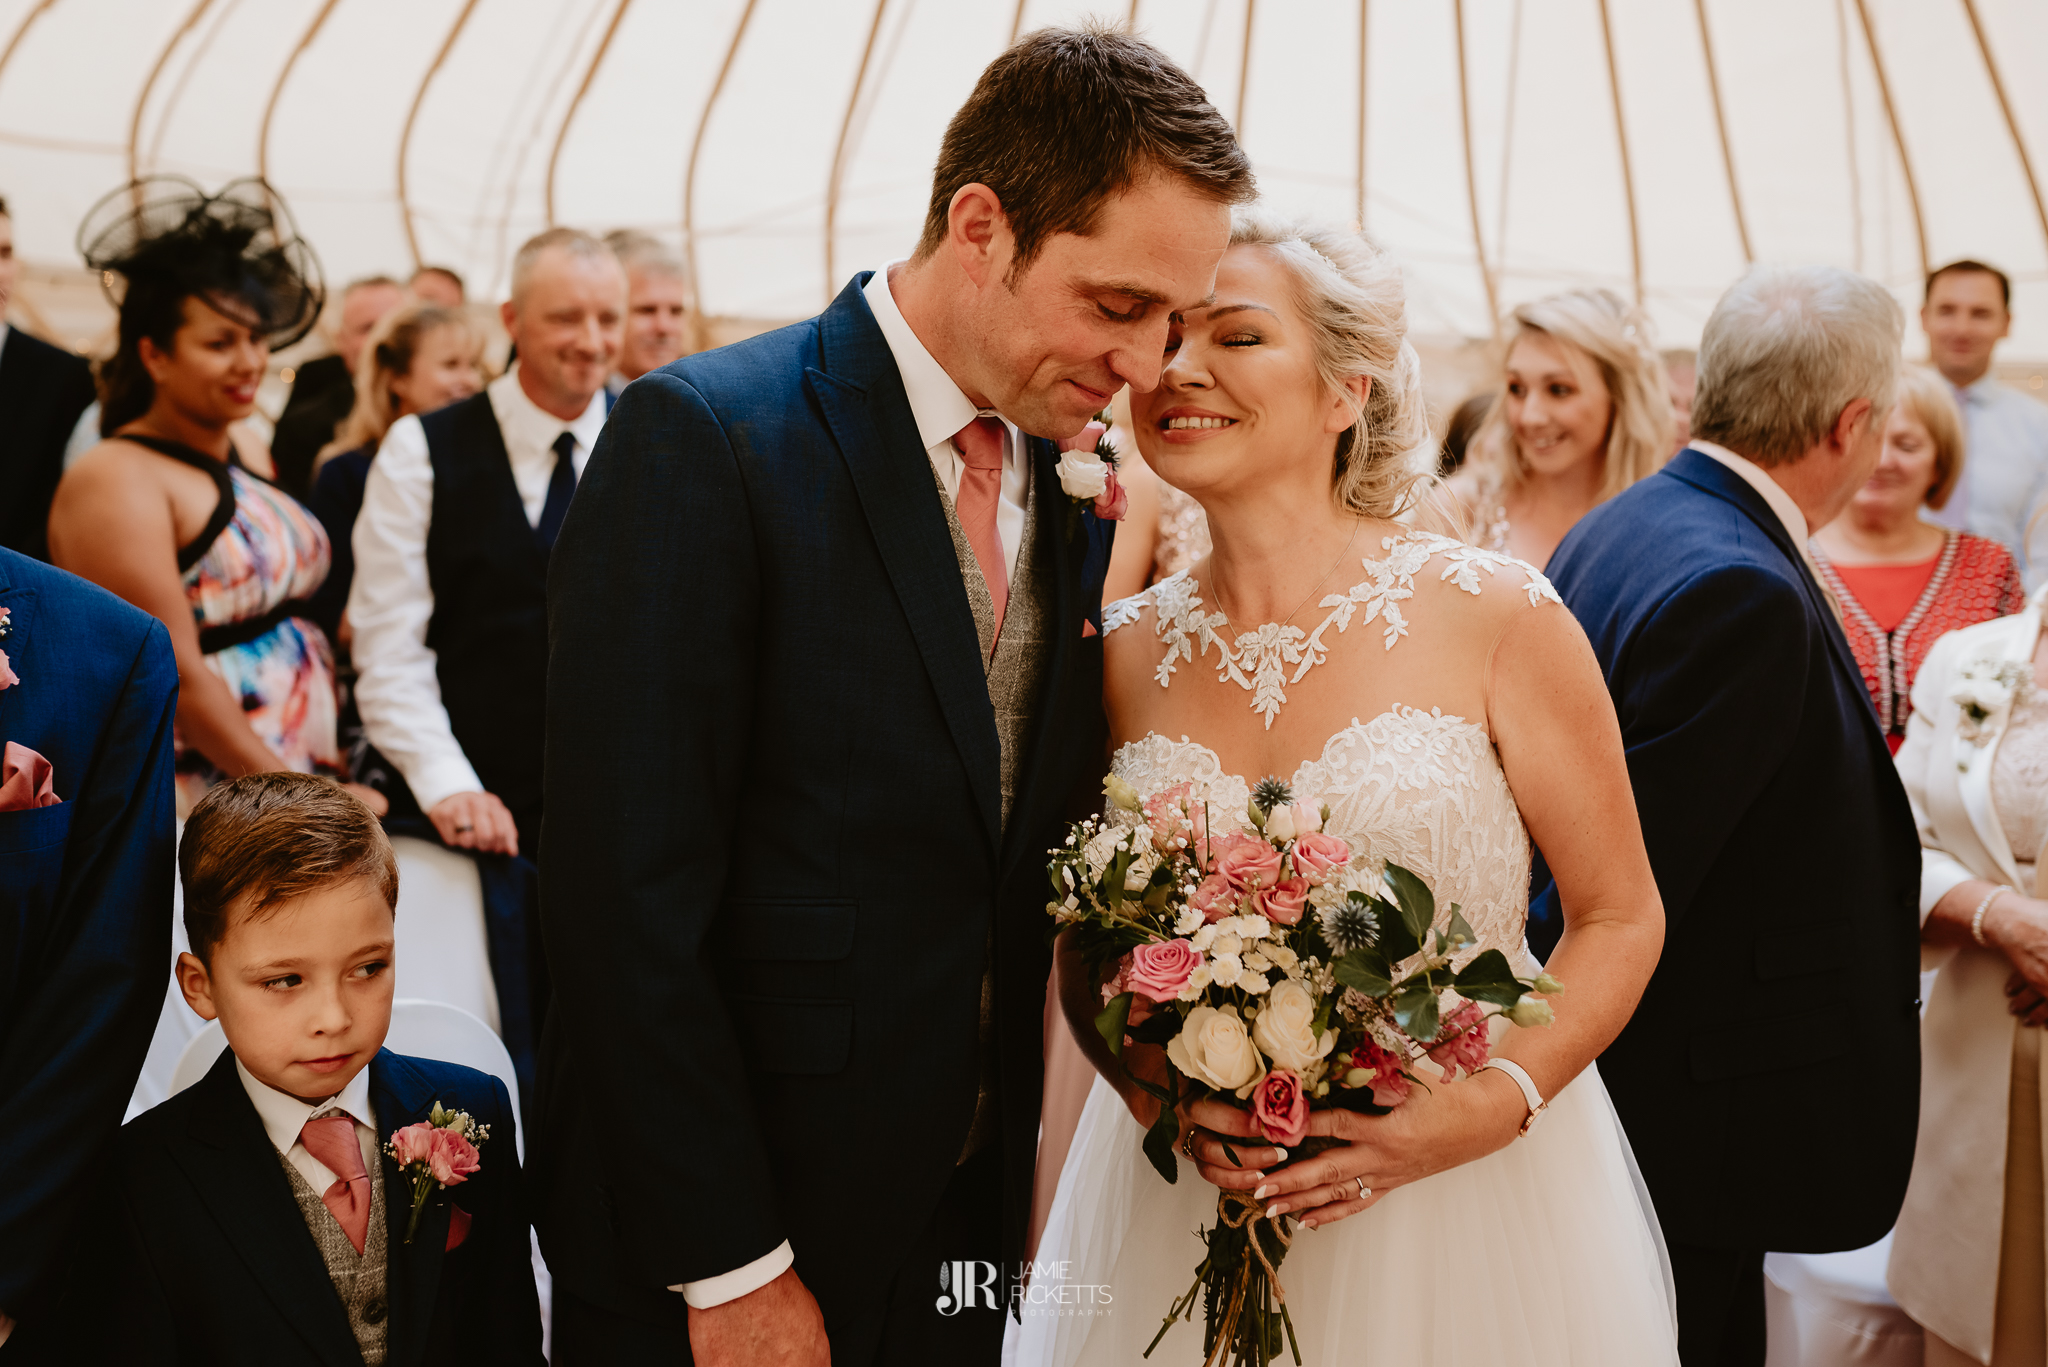 Wroxeter-Hotel-Wedding-Photography-In-Shropshire-By-Shropshire-Wedding-Photographer-Jamie-Ricketts-056.JPG